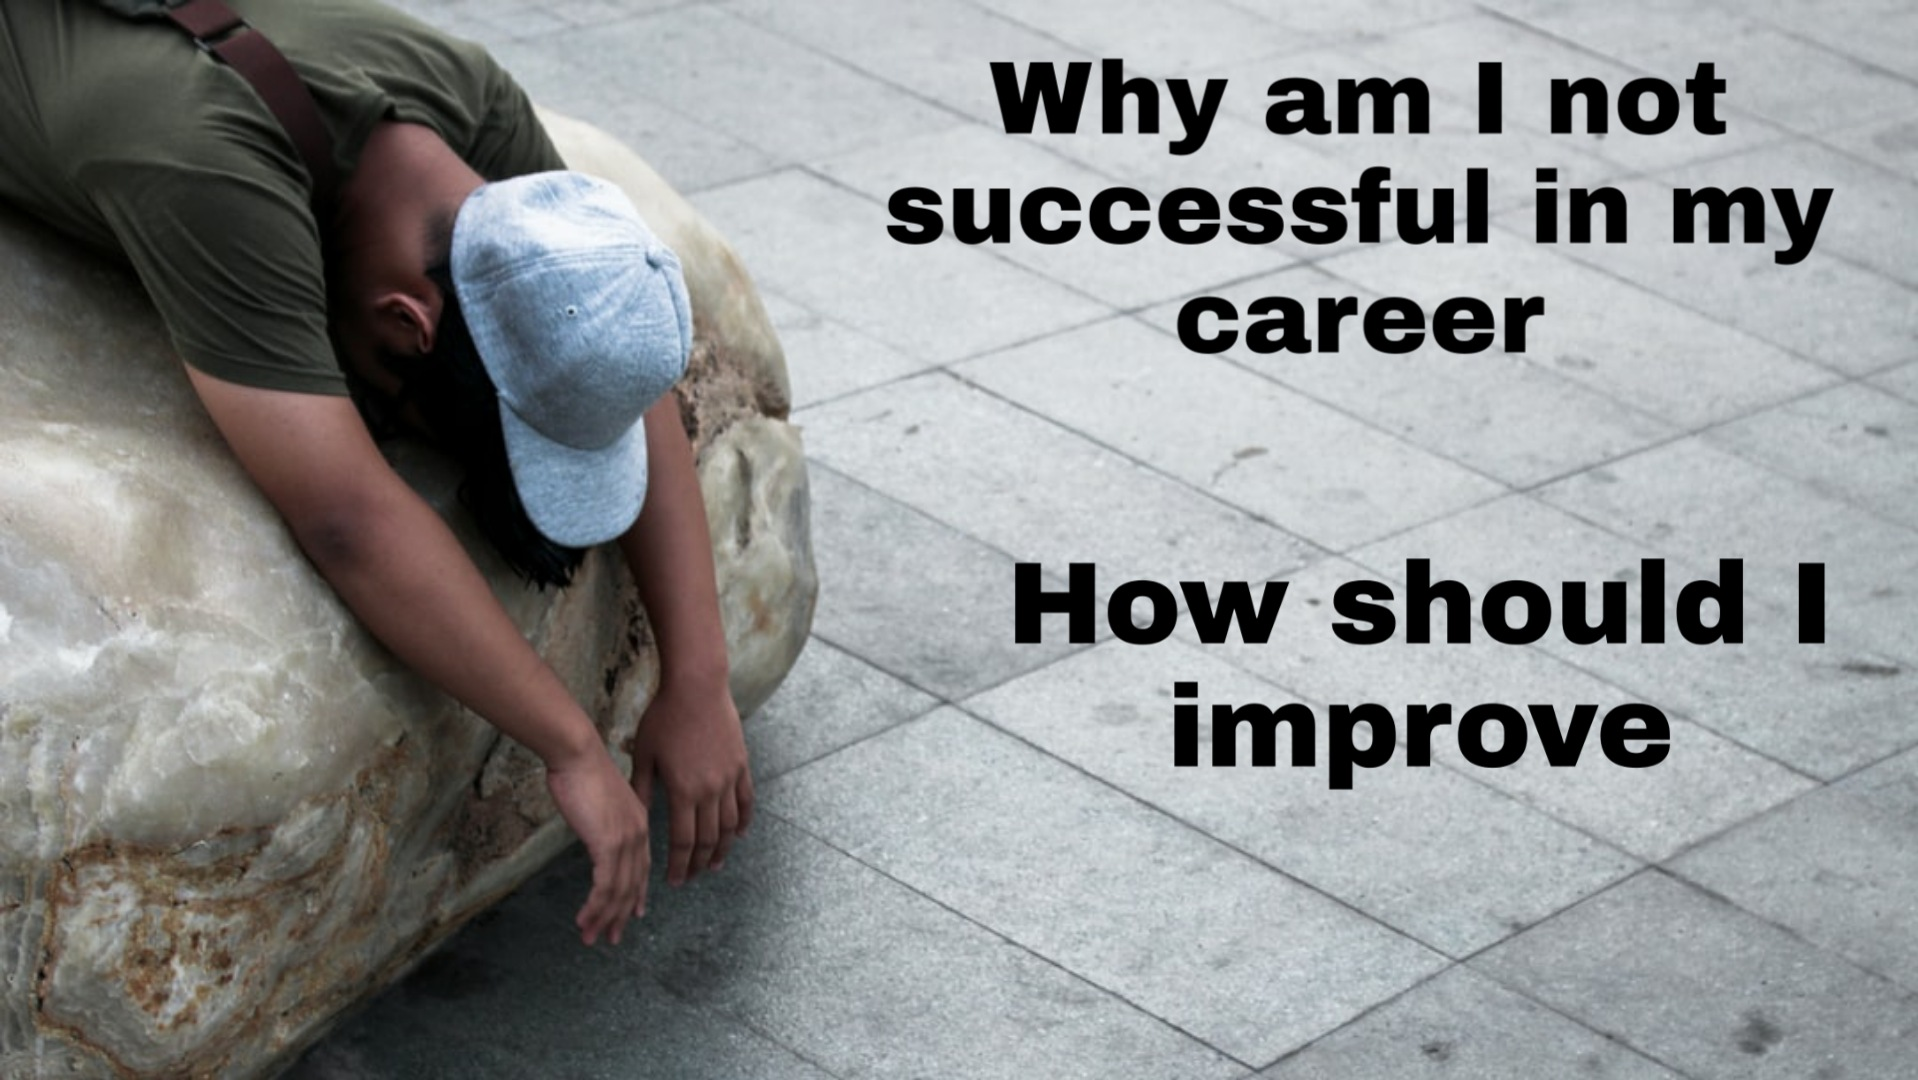 why am I not successful in my career